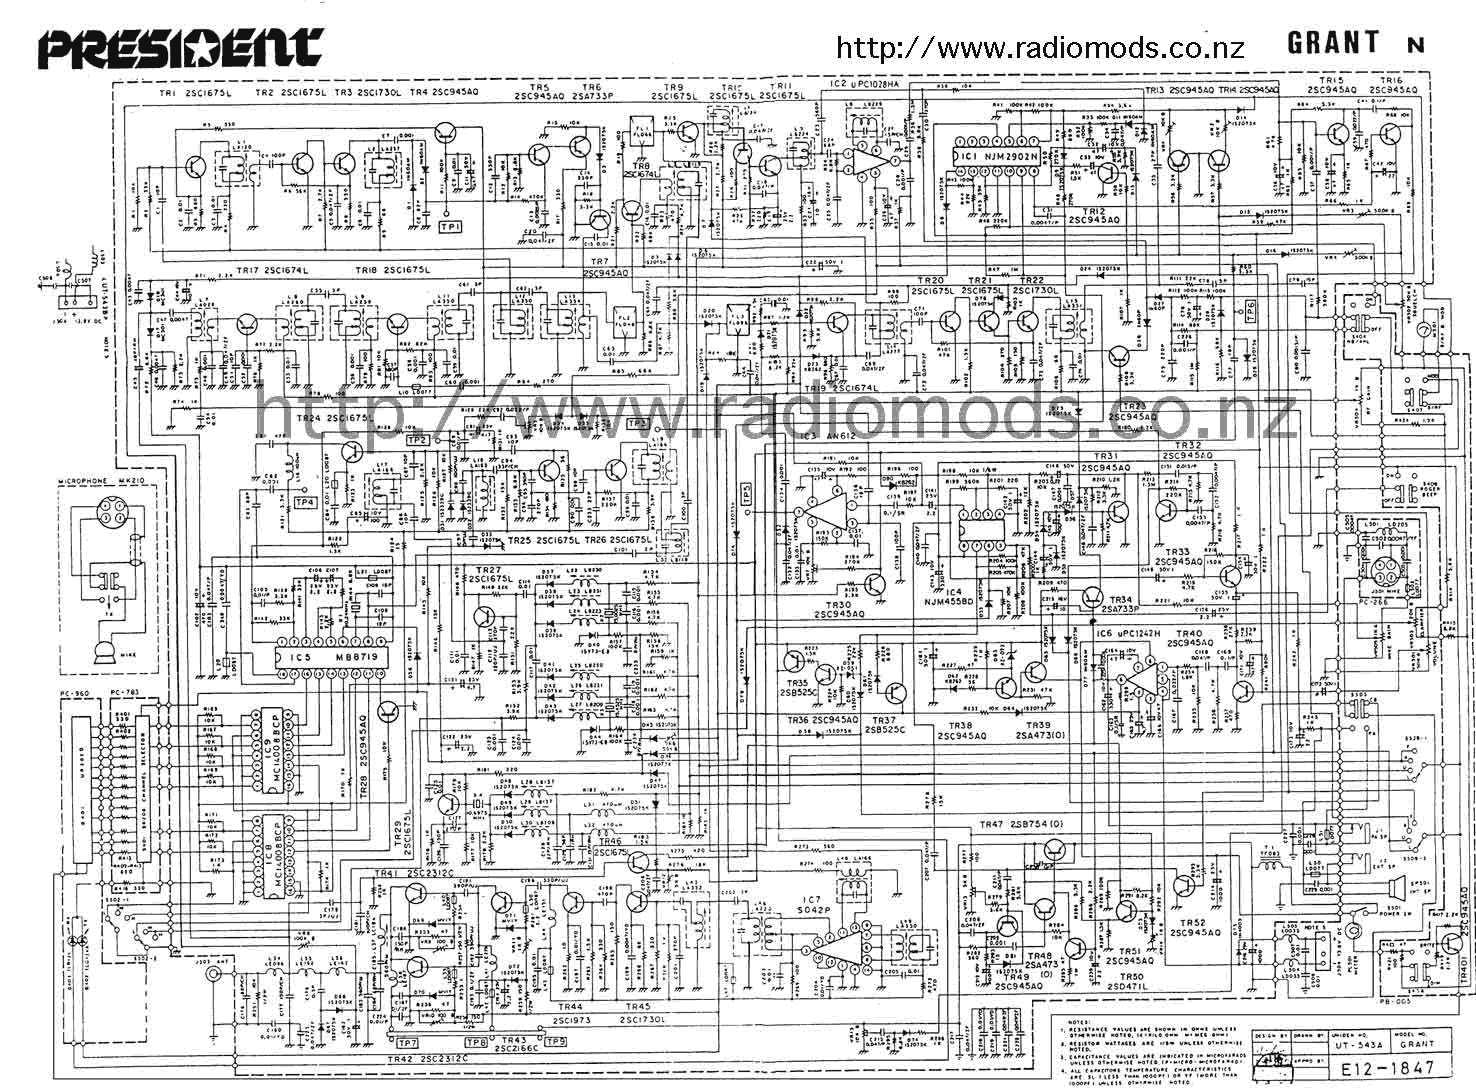 Go To the Uniden/President Grant (PC999) Circuit Diagram page